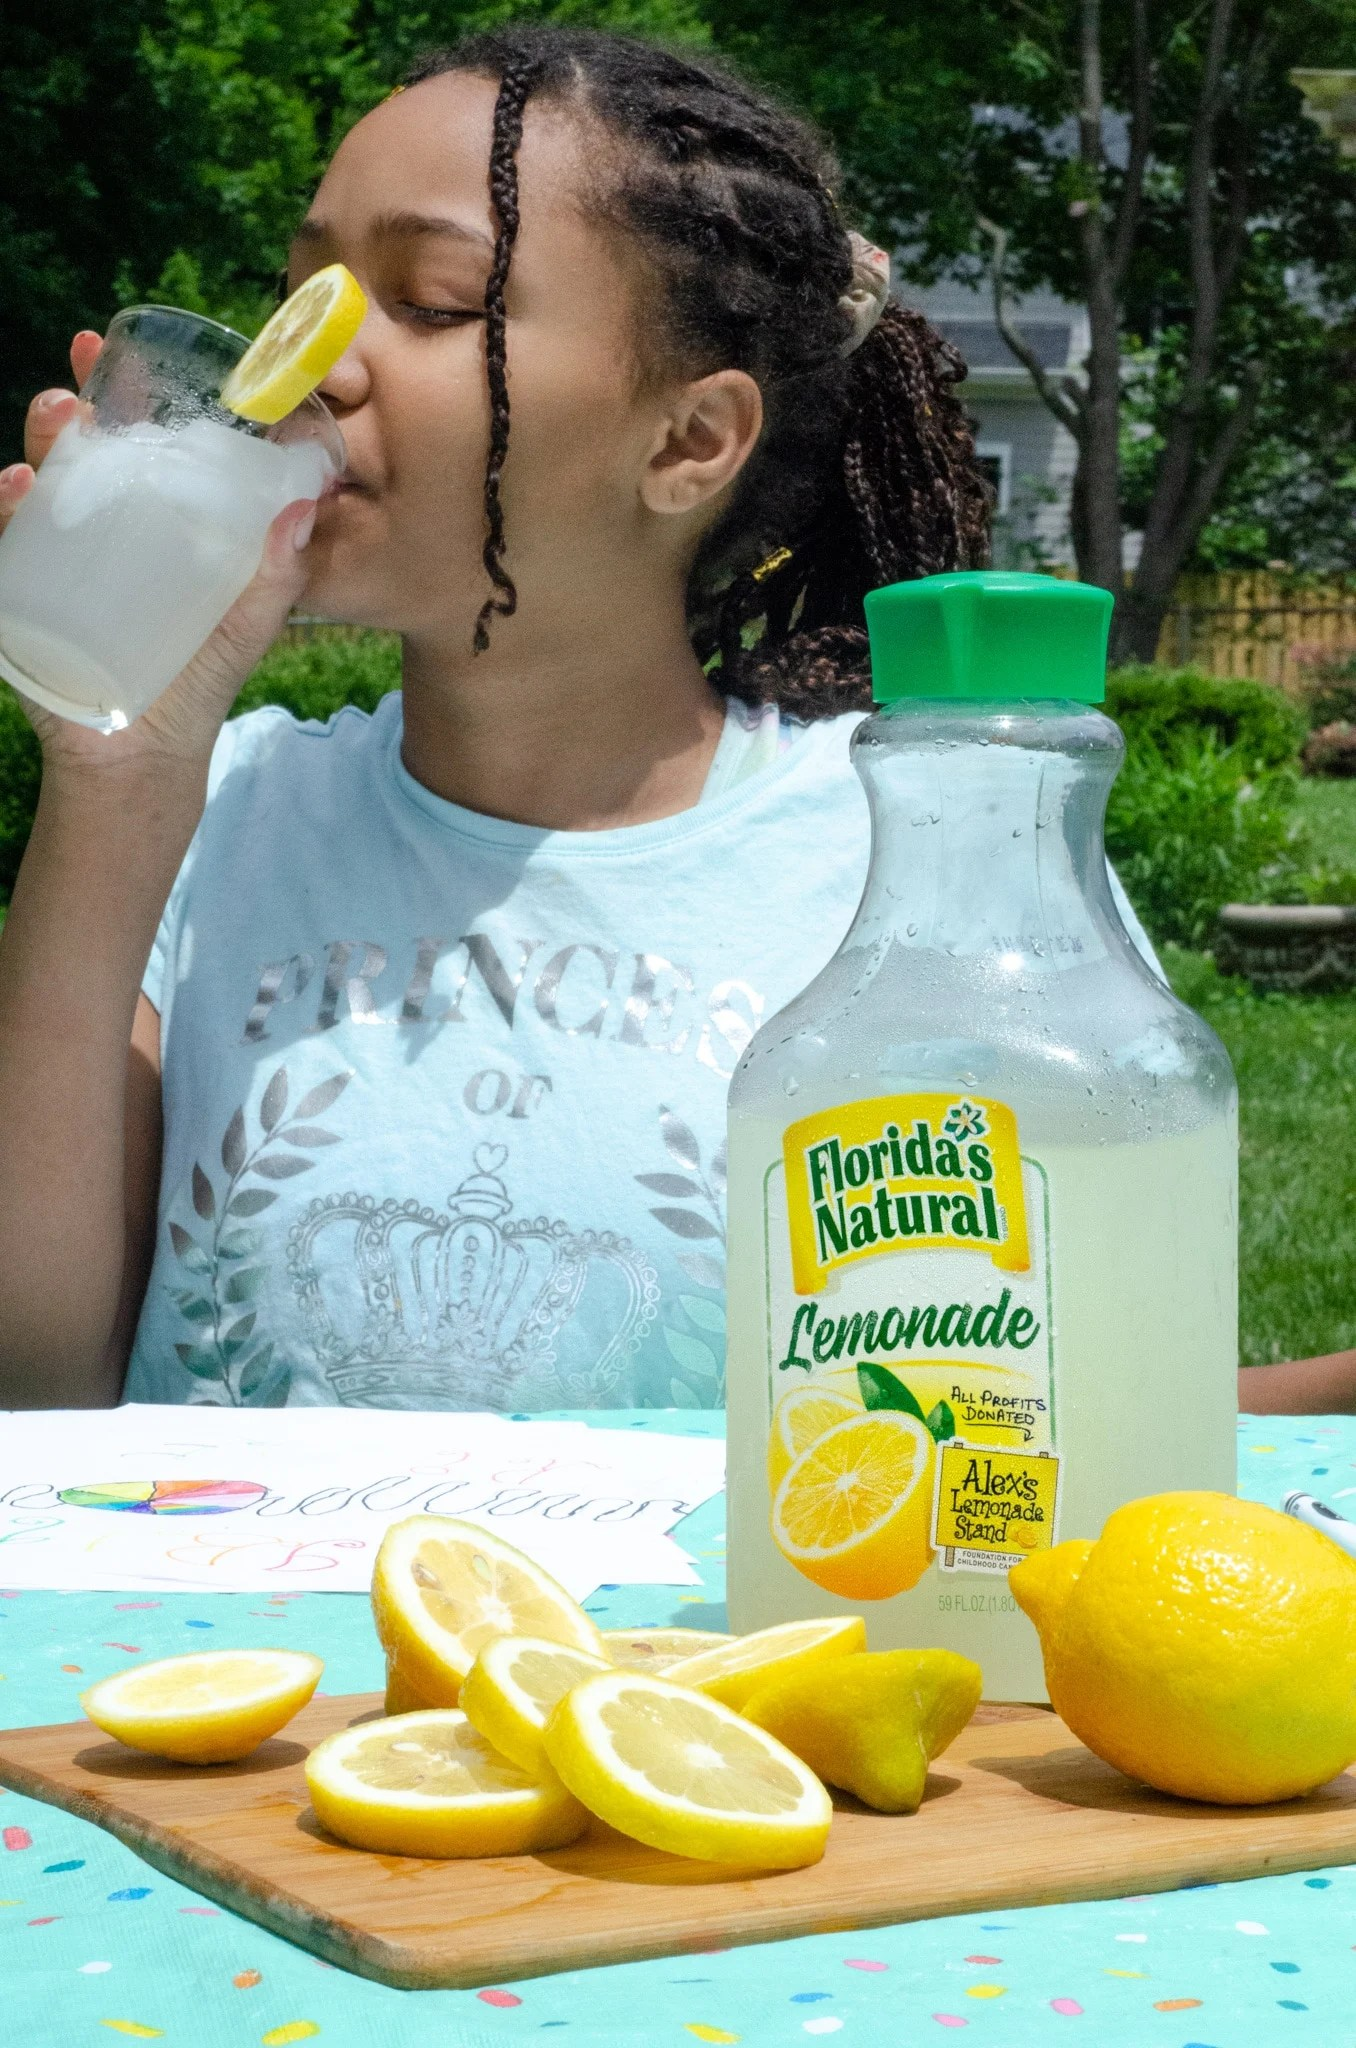 Lemonade Inspired Art Keturah Drinking Lemonade. Looking for a fun way to keep the kids entertained this summer? Celebrate the start of summer with Lemonade-Inspired Art In the Backyard.